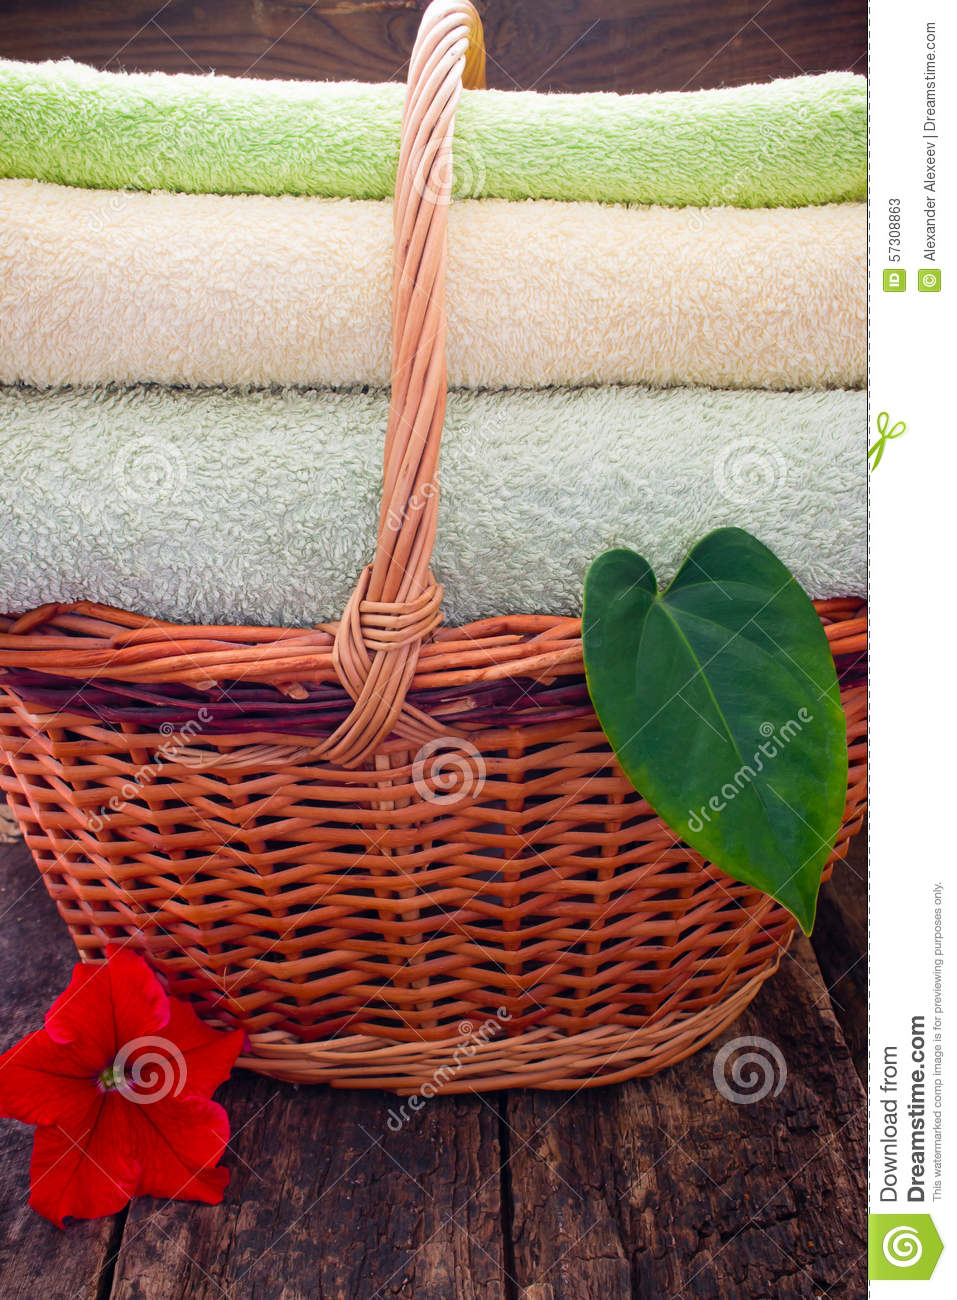 Next Woven Basket : Towels in a wicker basket next to the flowers and leaves